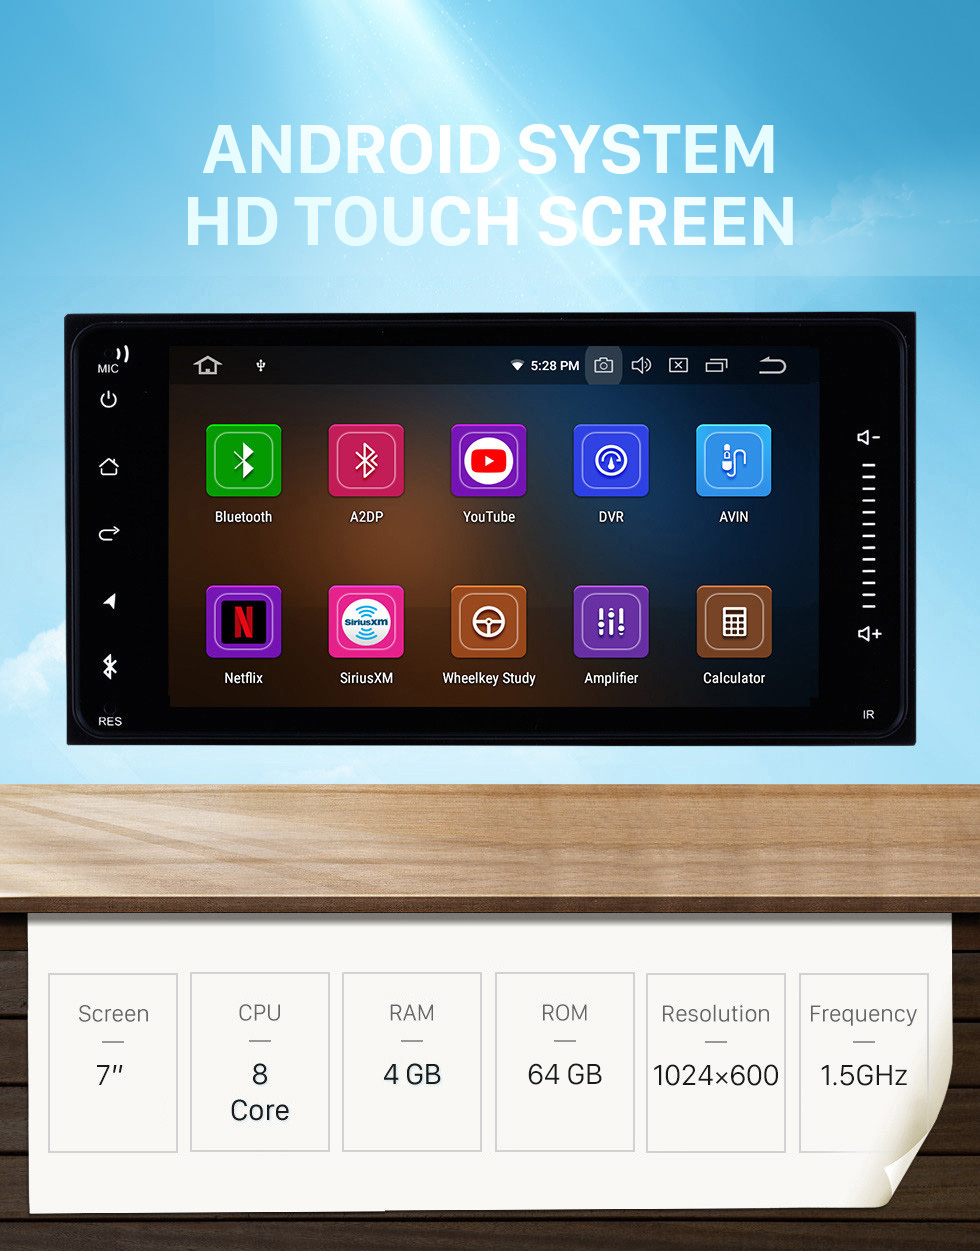 Seicane Toyota Universal Android 10.0 7 inch HD Touch Screen radio Bluetooth GPS Navigation system USB WIFI support TPMS DVR OBD II WiFi Rear camera Steering Wheel Control HD 1080P Video AUX